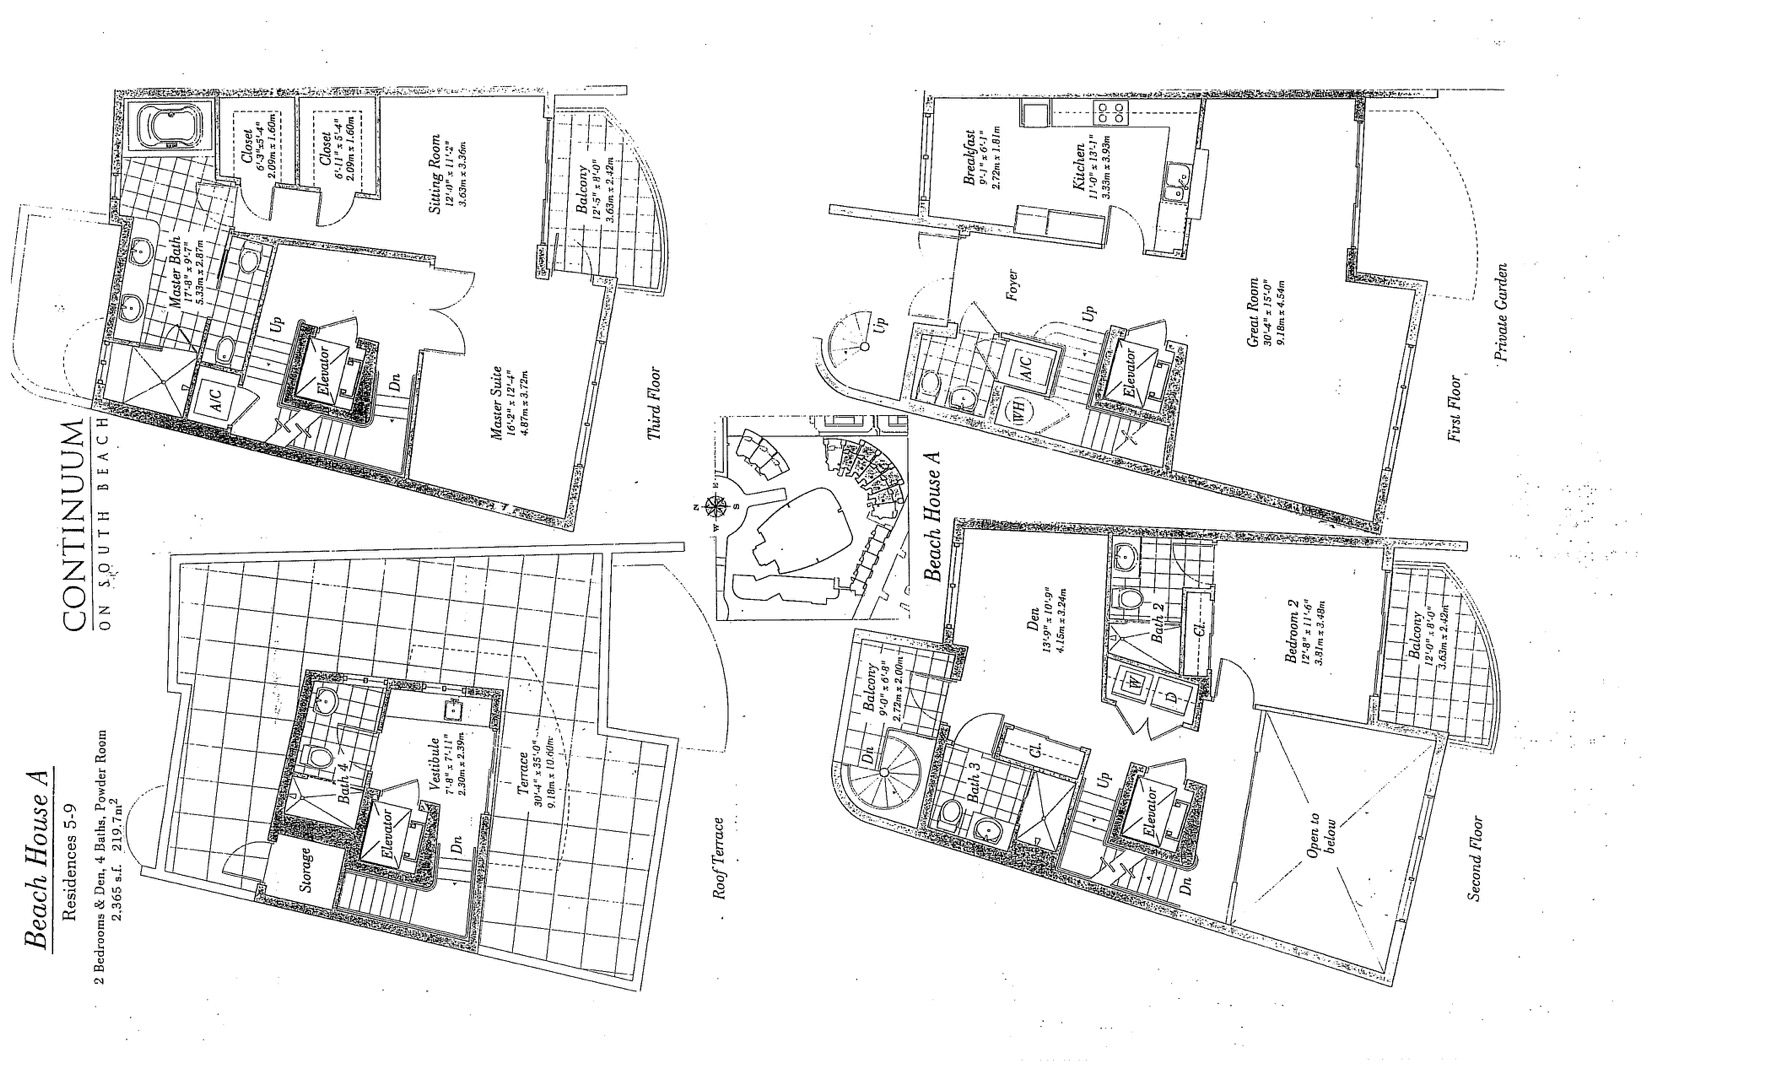 Floor plan image TA - 2/4/1  - 2365 sqft image